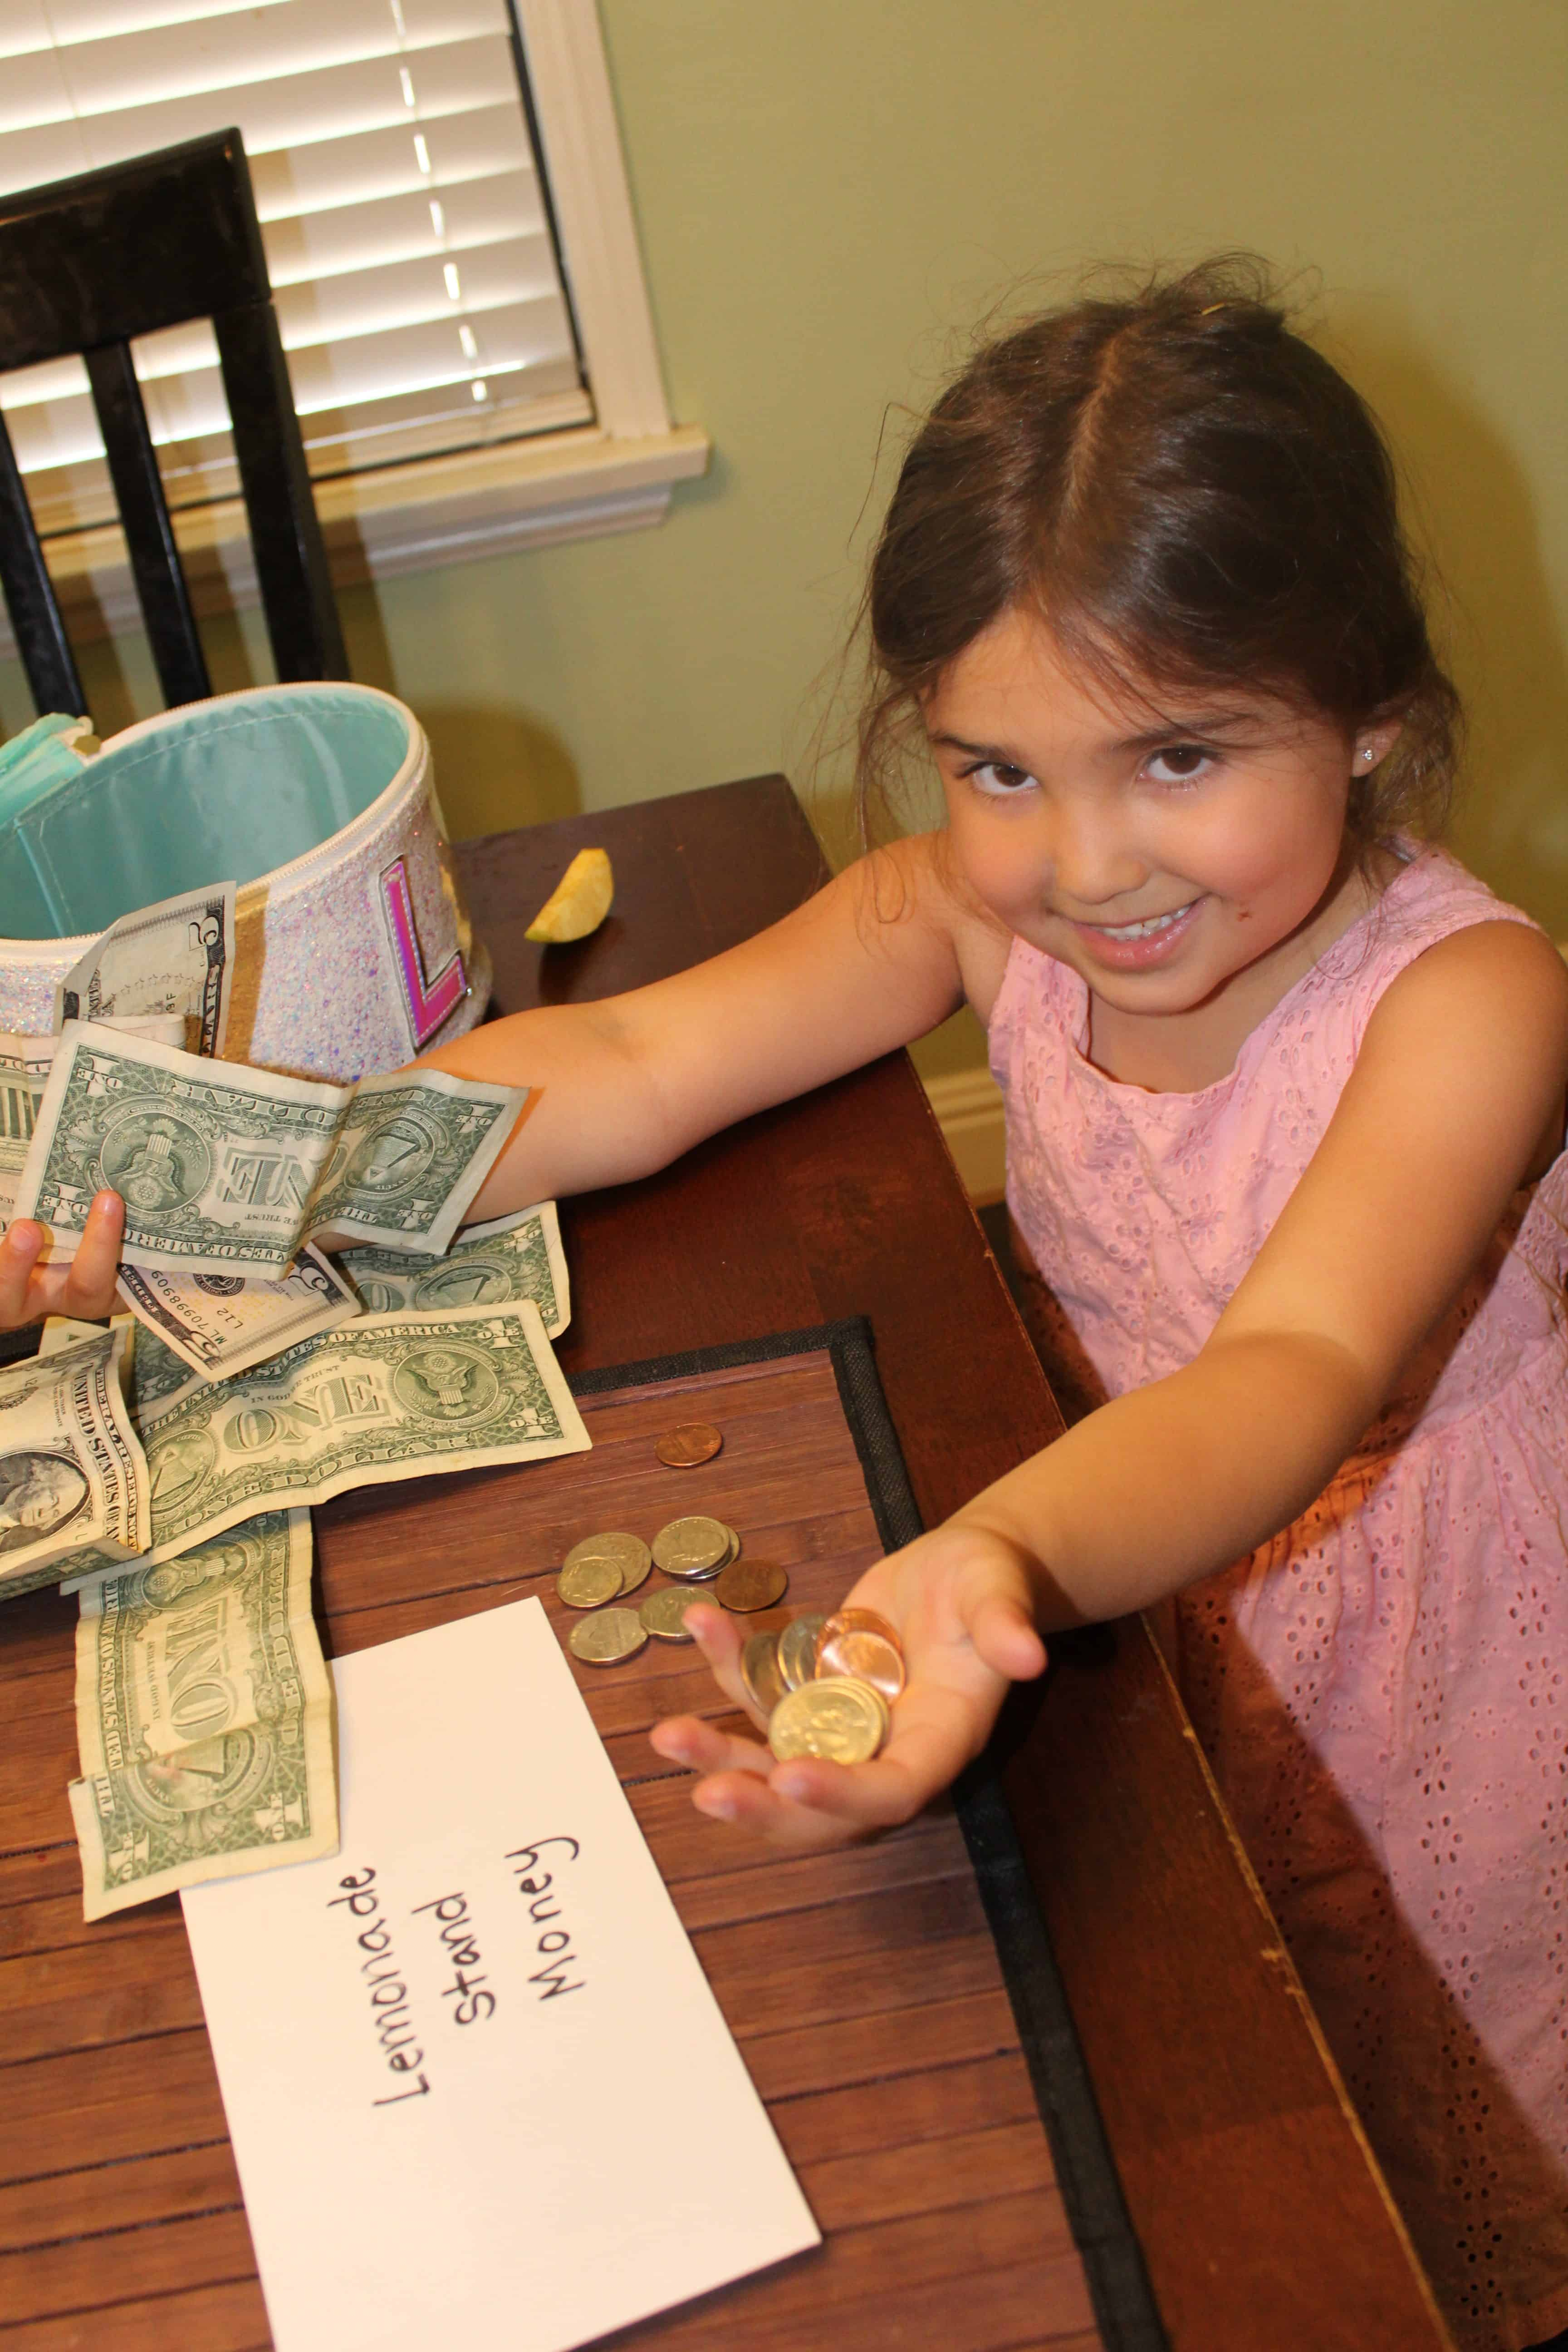 A little girl holding out Quarters and Dimes